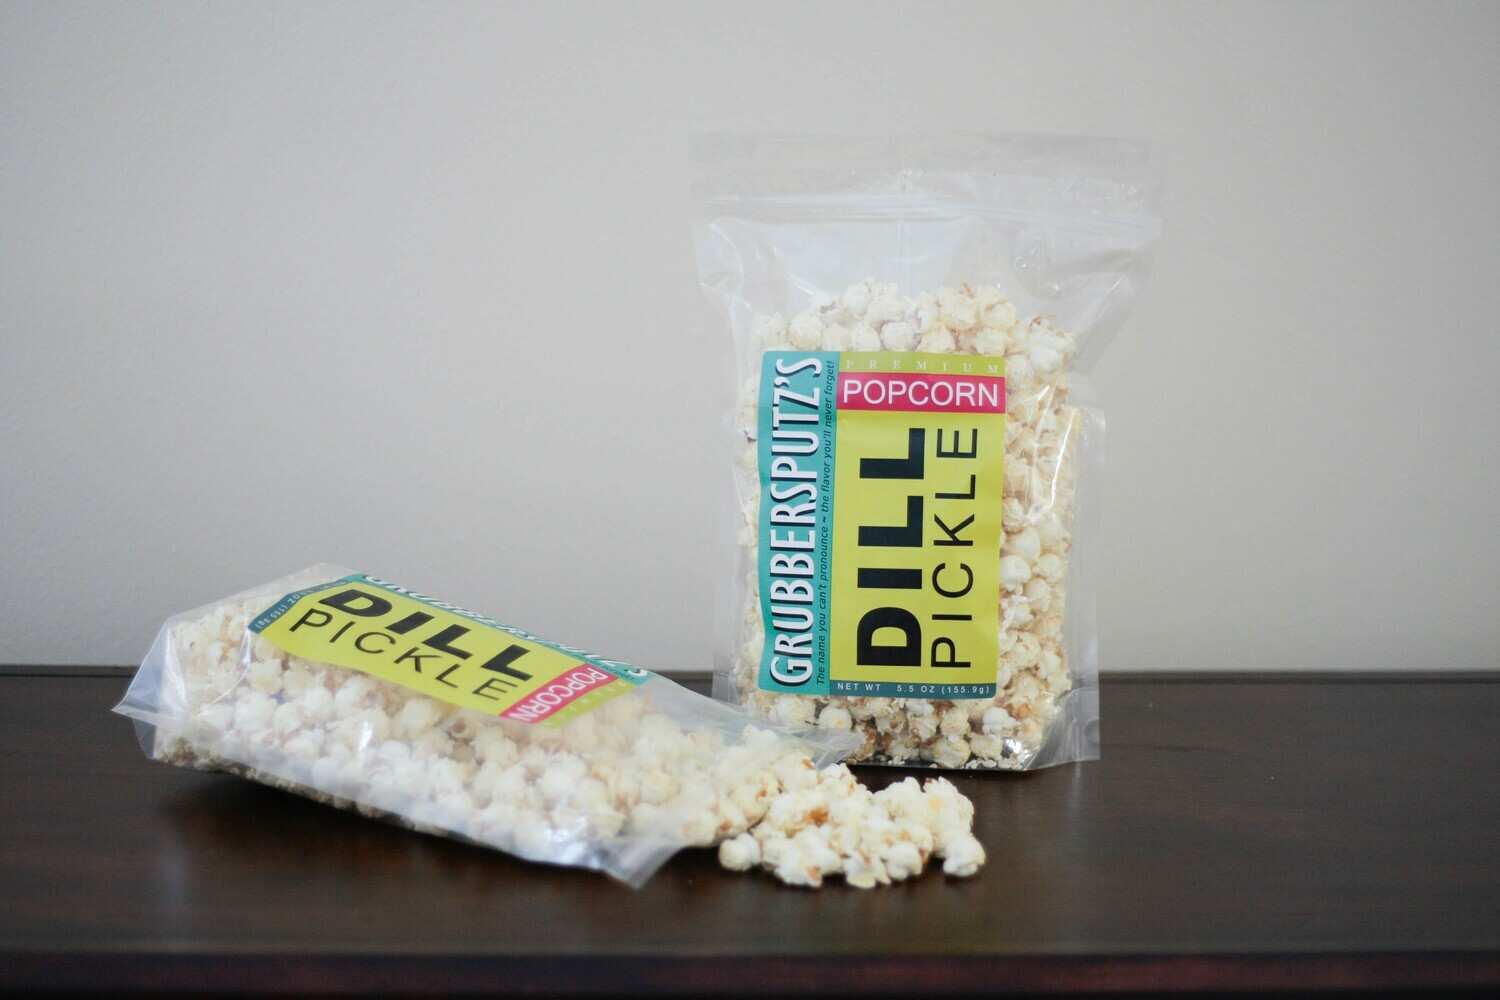 Grubbersputz's Dill Pickle Popcorn - 3 pack